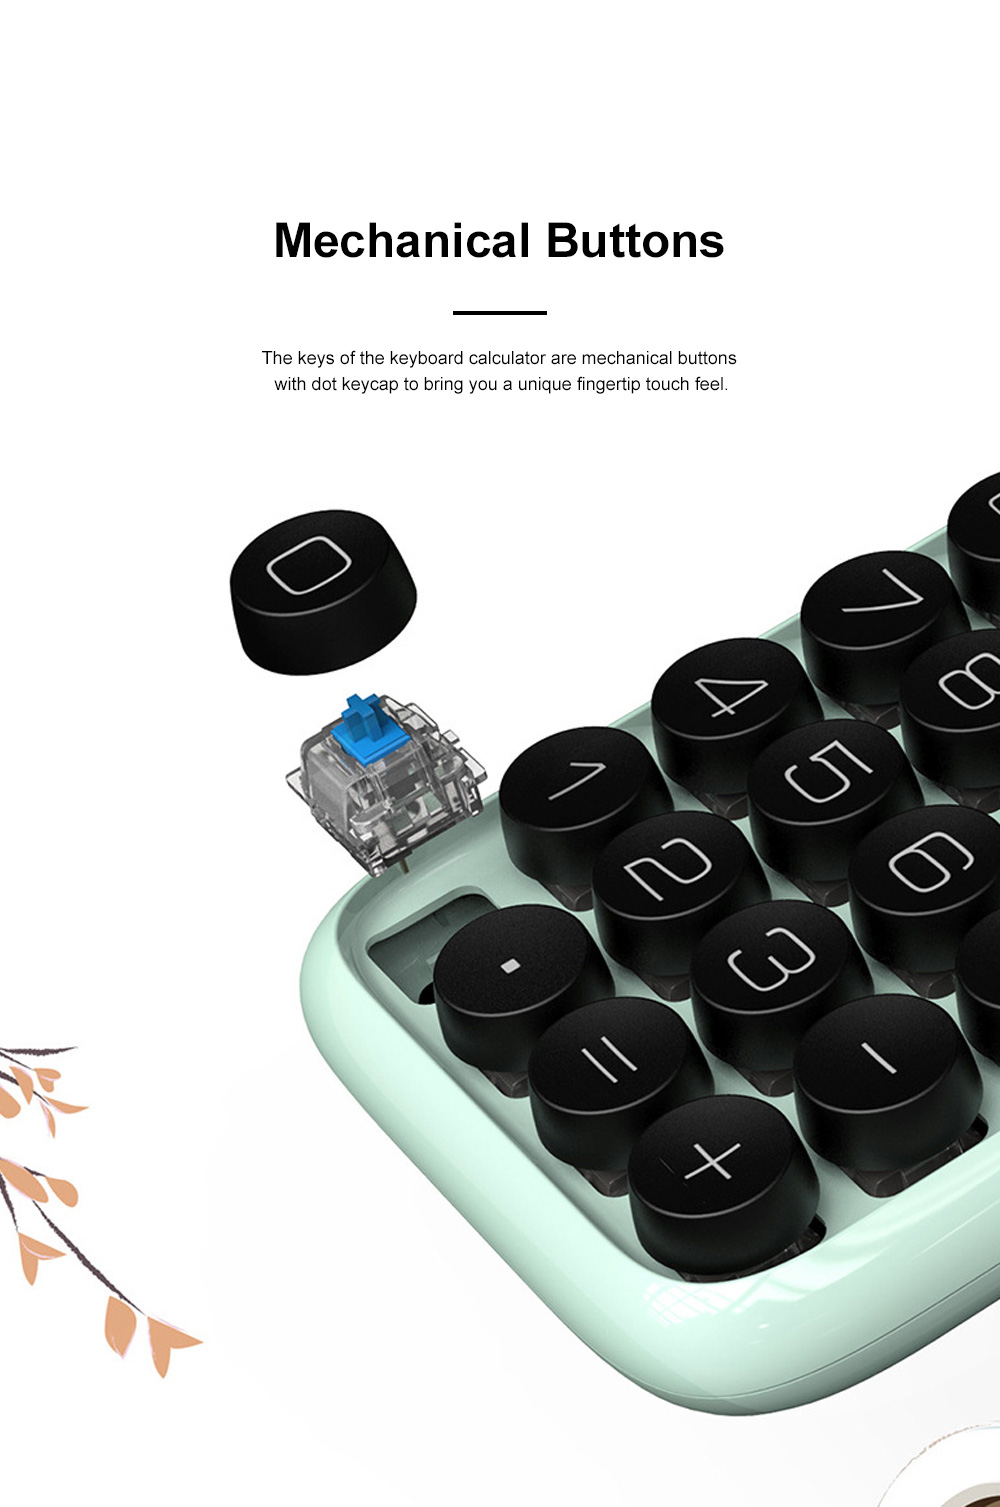 Retro Style Keyboard Calculator for Office Use Mechanical Dot Keycap Key Calculator Stylish Durable Calculator 1